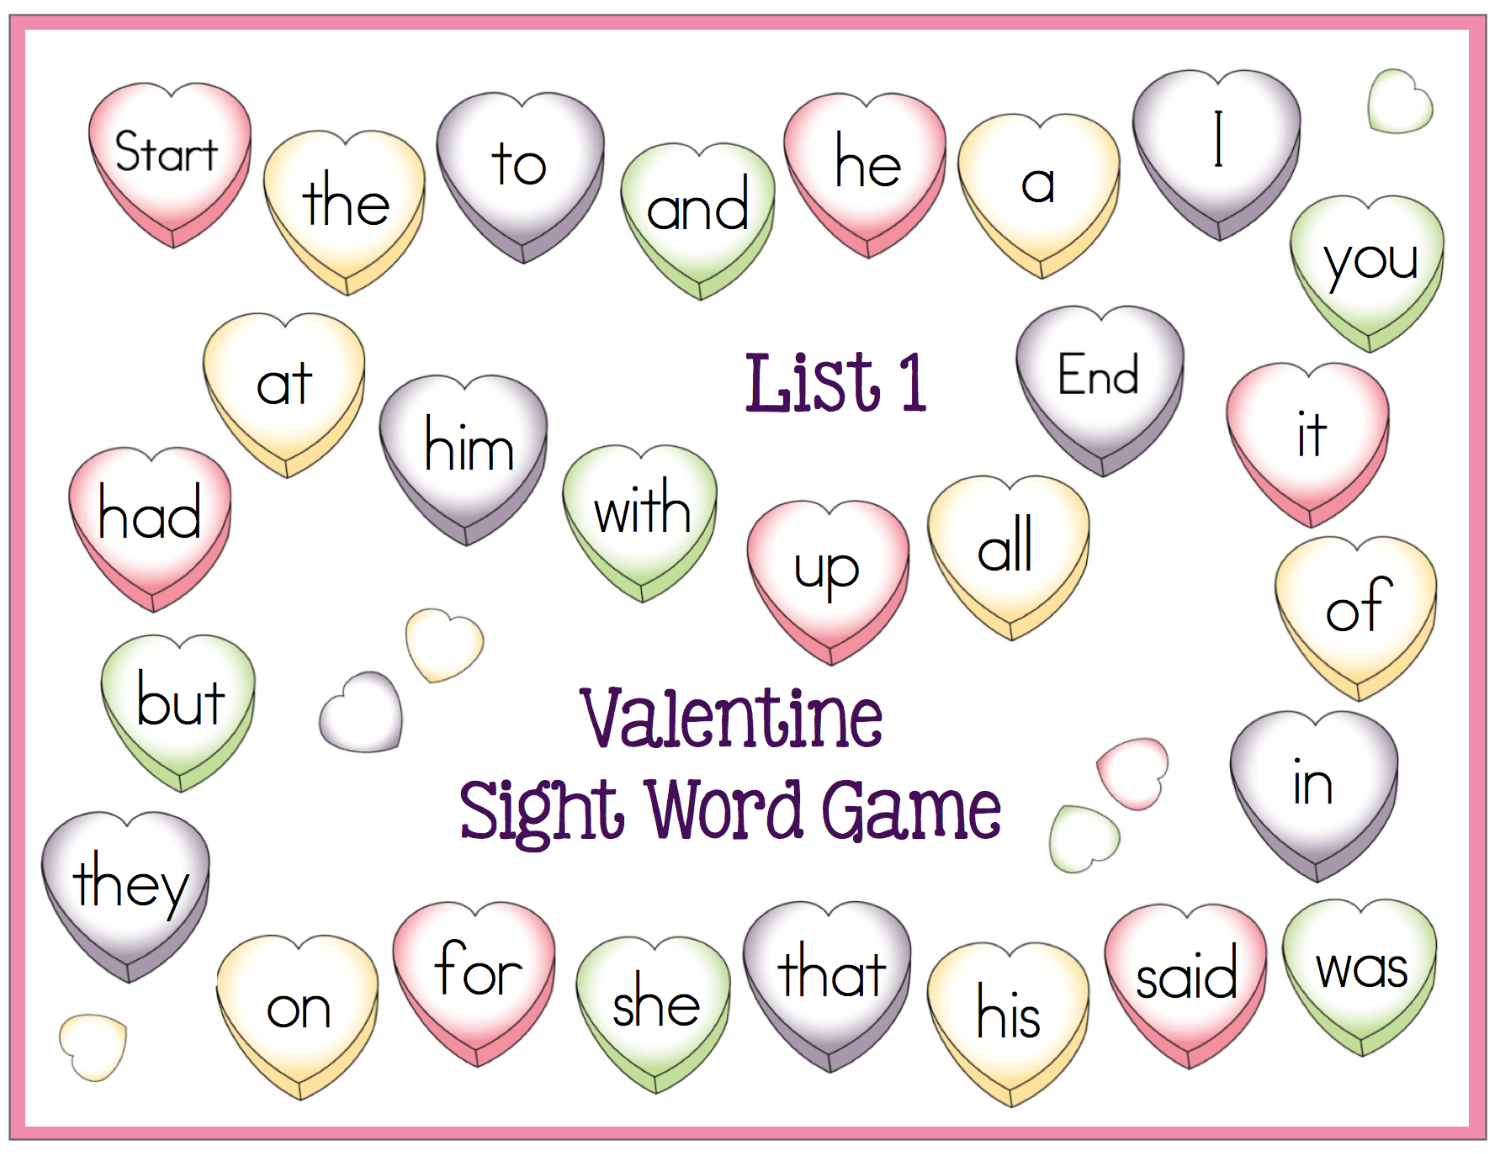 Valentine Sight Word Game Boards Freebie